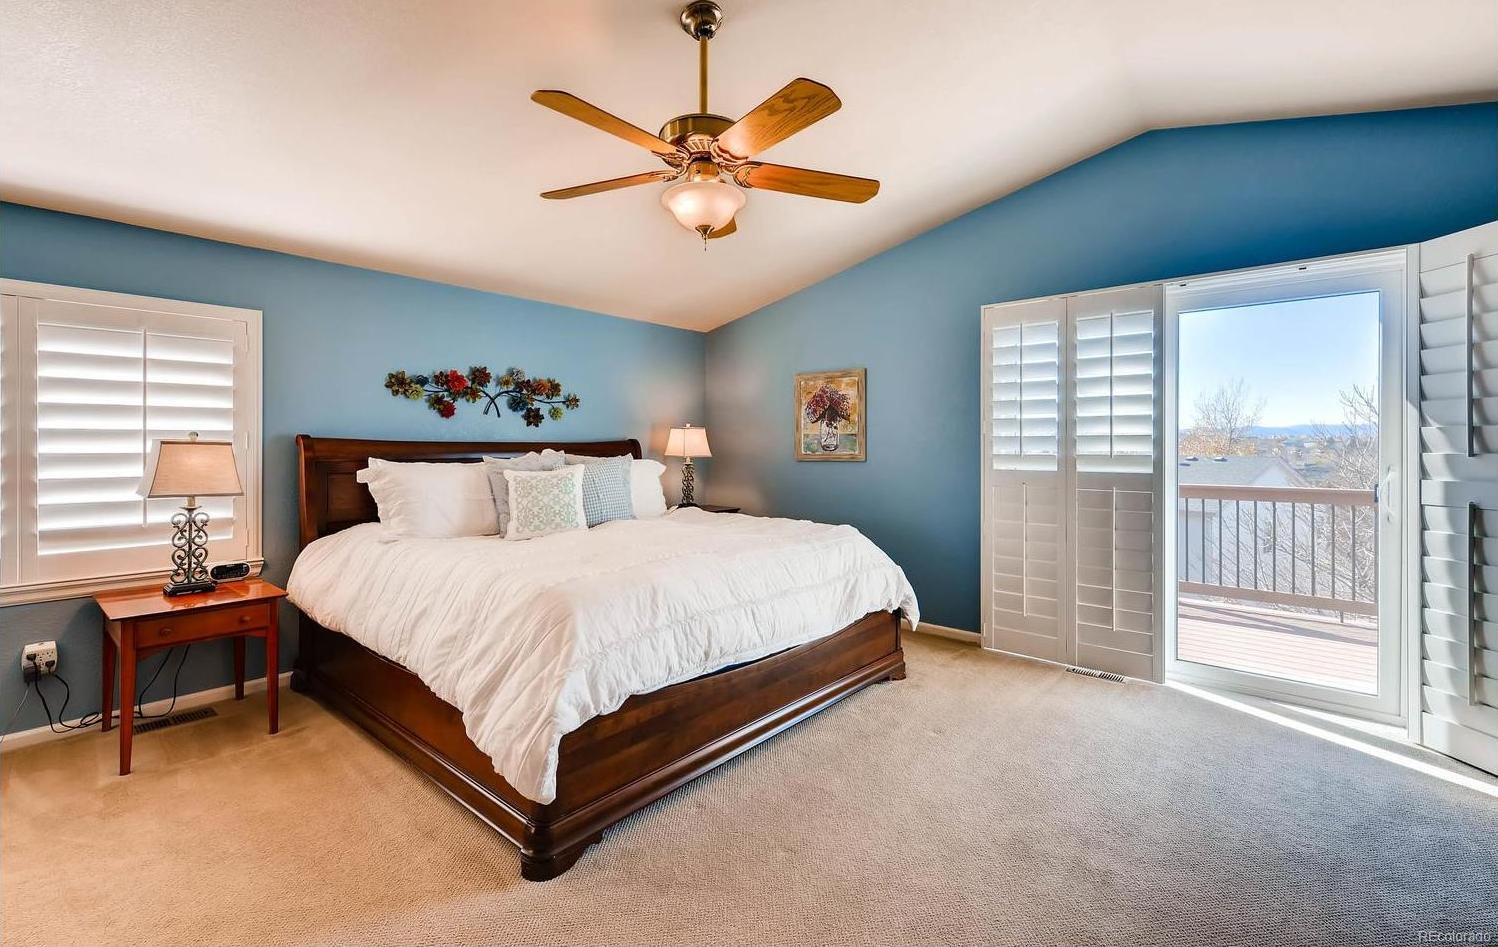 Spacious master bedroom with vaulted ceilings and pajama deck